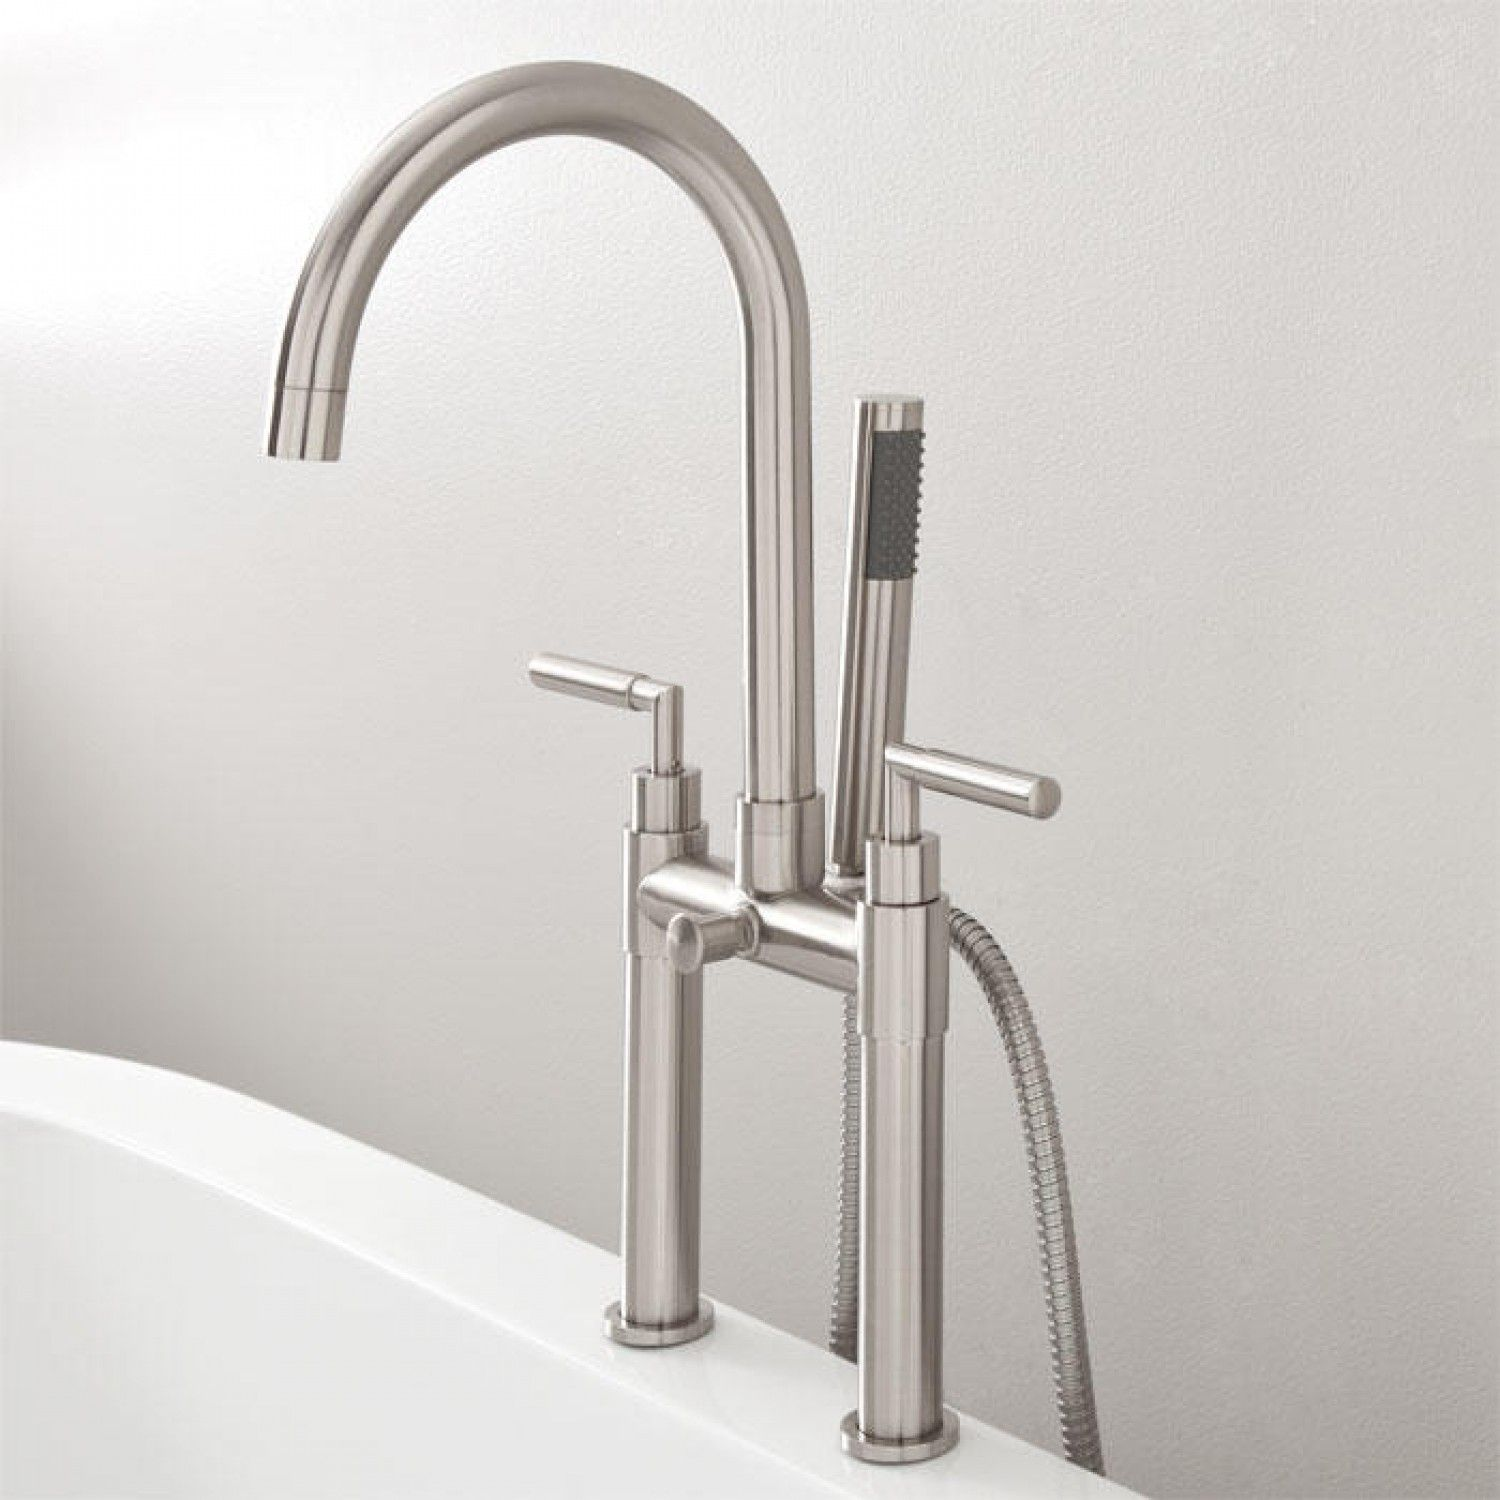 Desma Deck-Mount Tub Faucet and Hand Shower | Shower tub, Faucet and ...